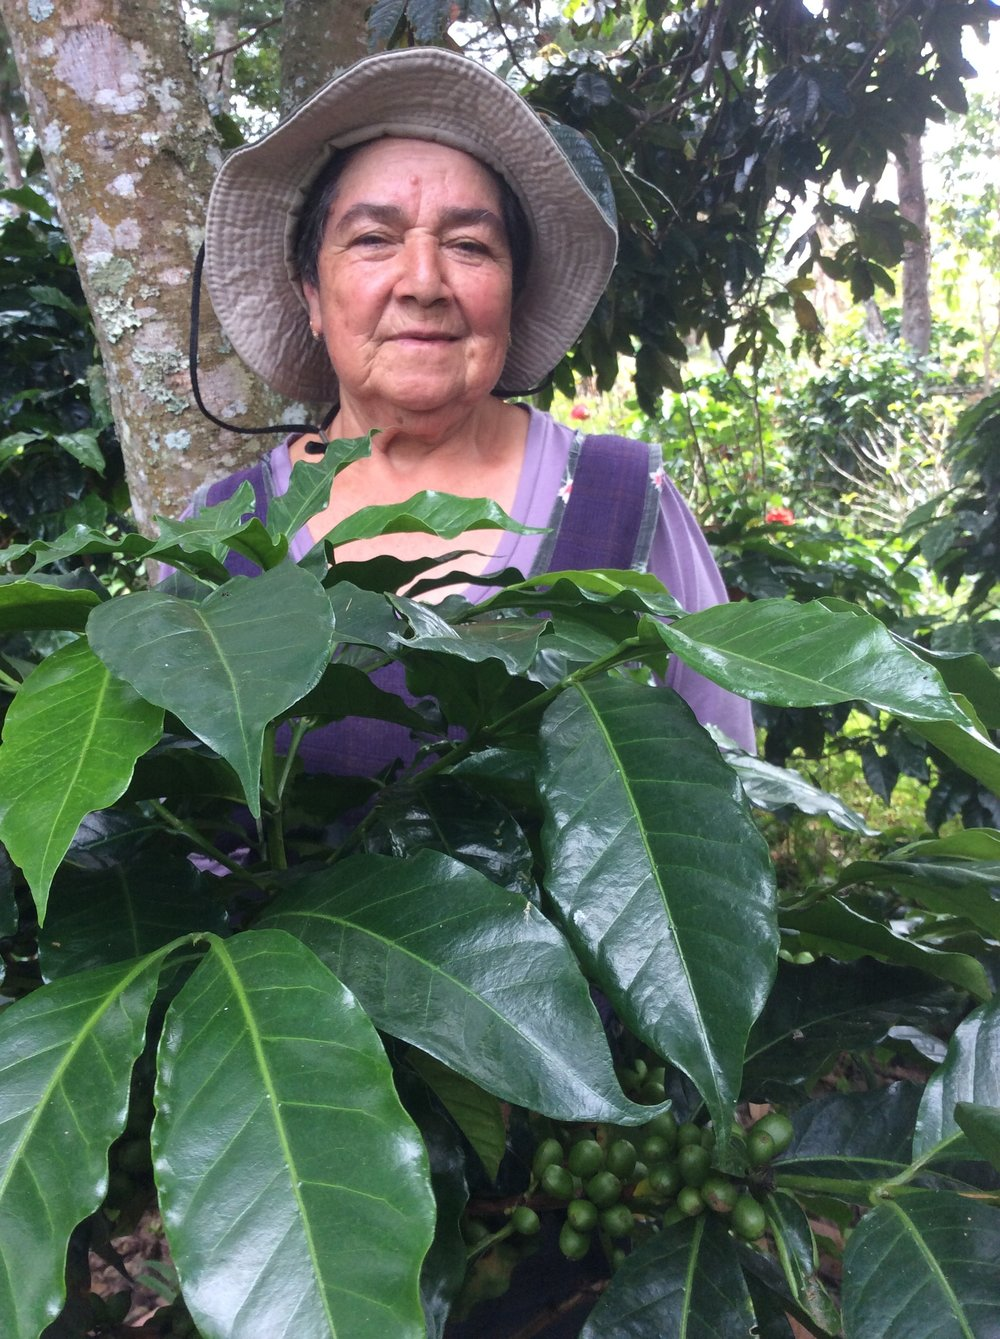 Aunt of Juan Pablo. Mother and head of family, she has cultivated coffee for many years, a product that has been the sustenance of her large family. Dedicated full time to their land and crops.